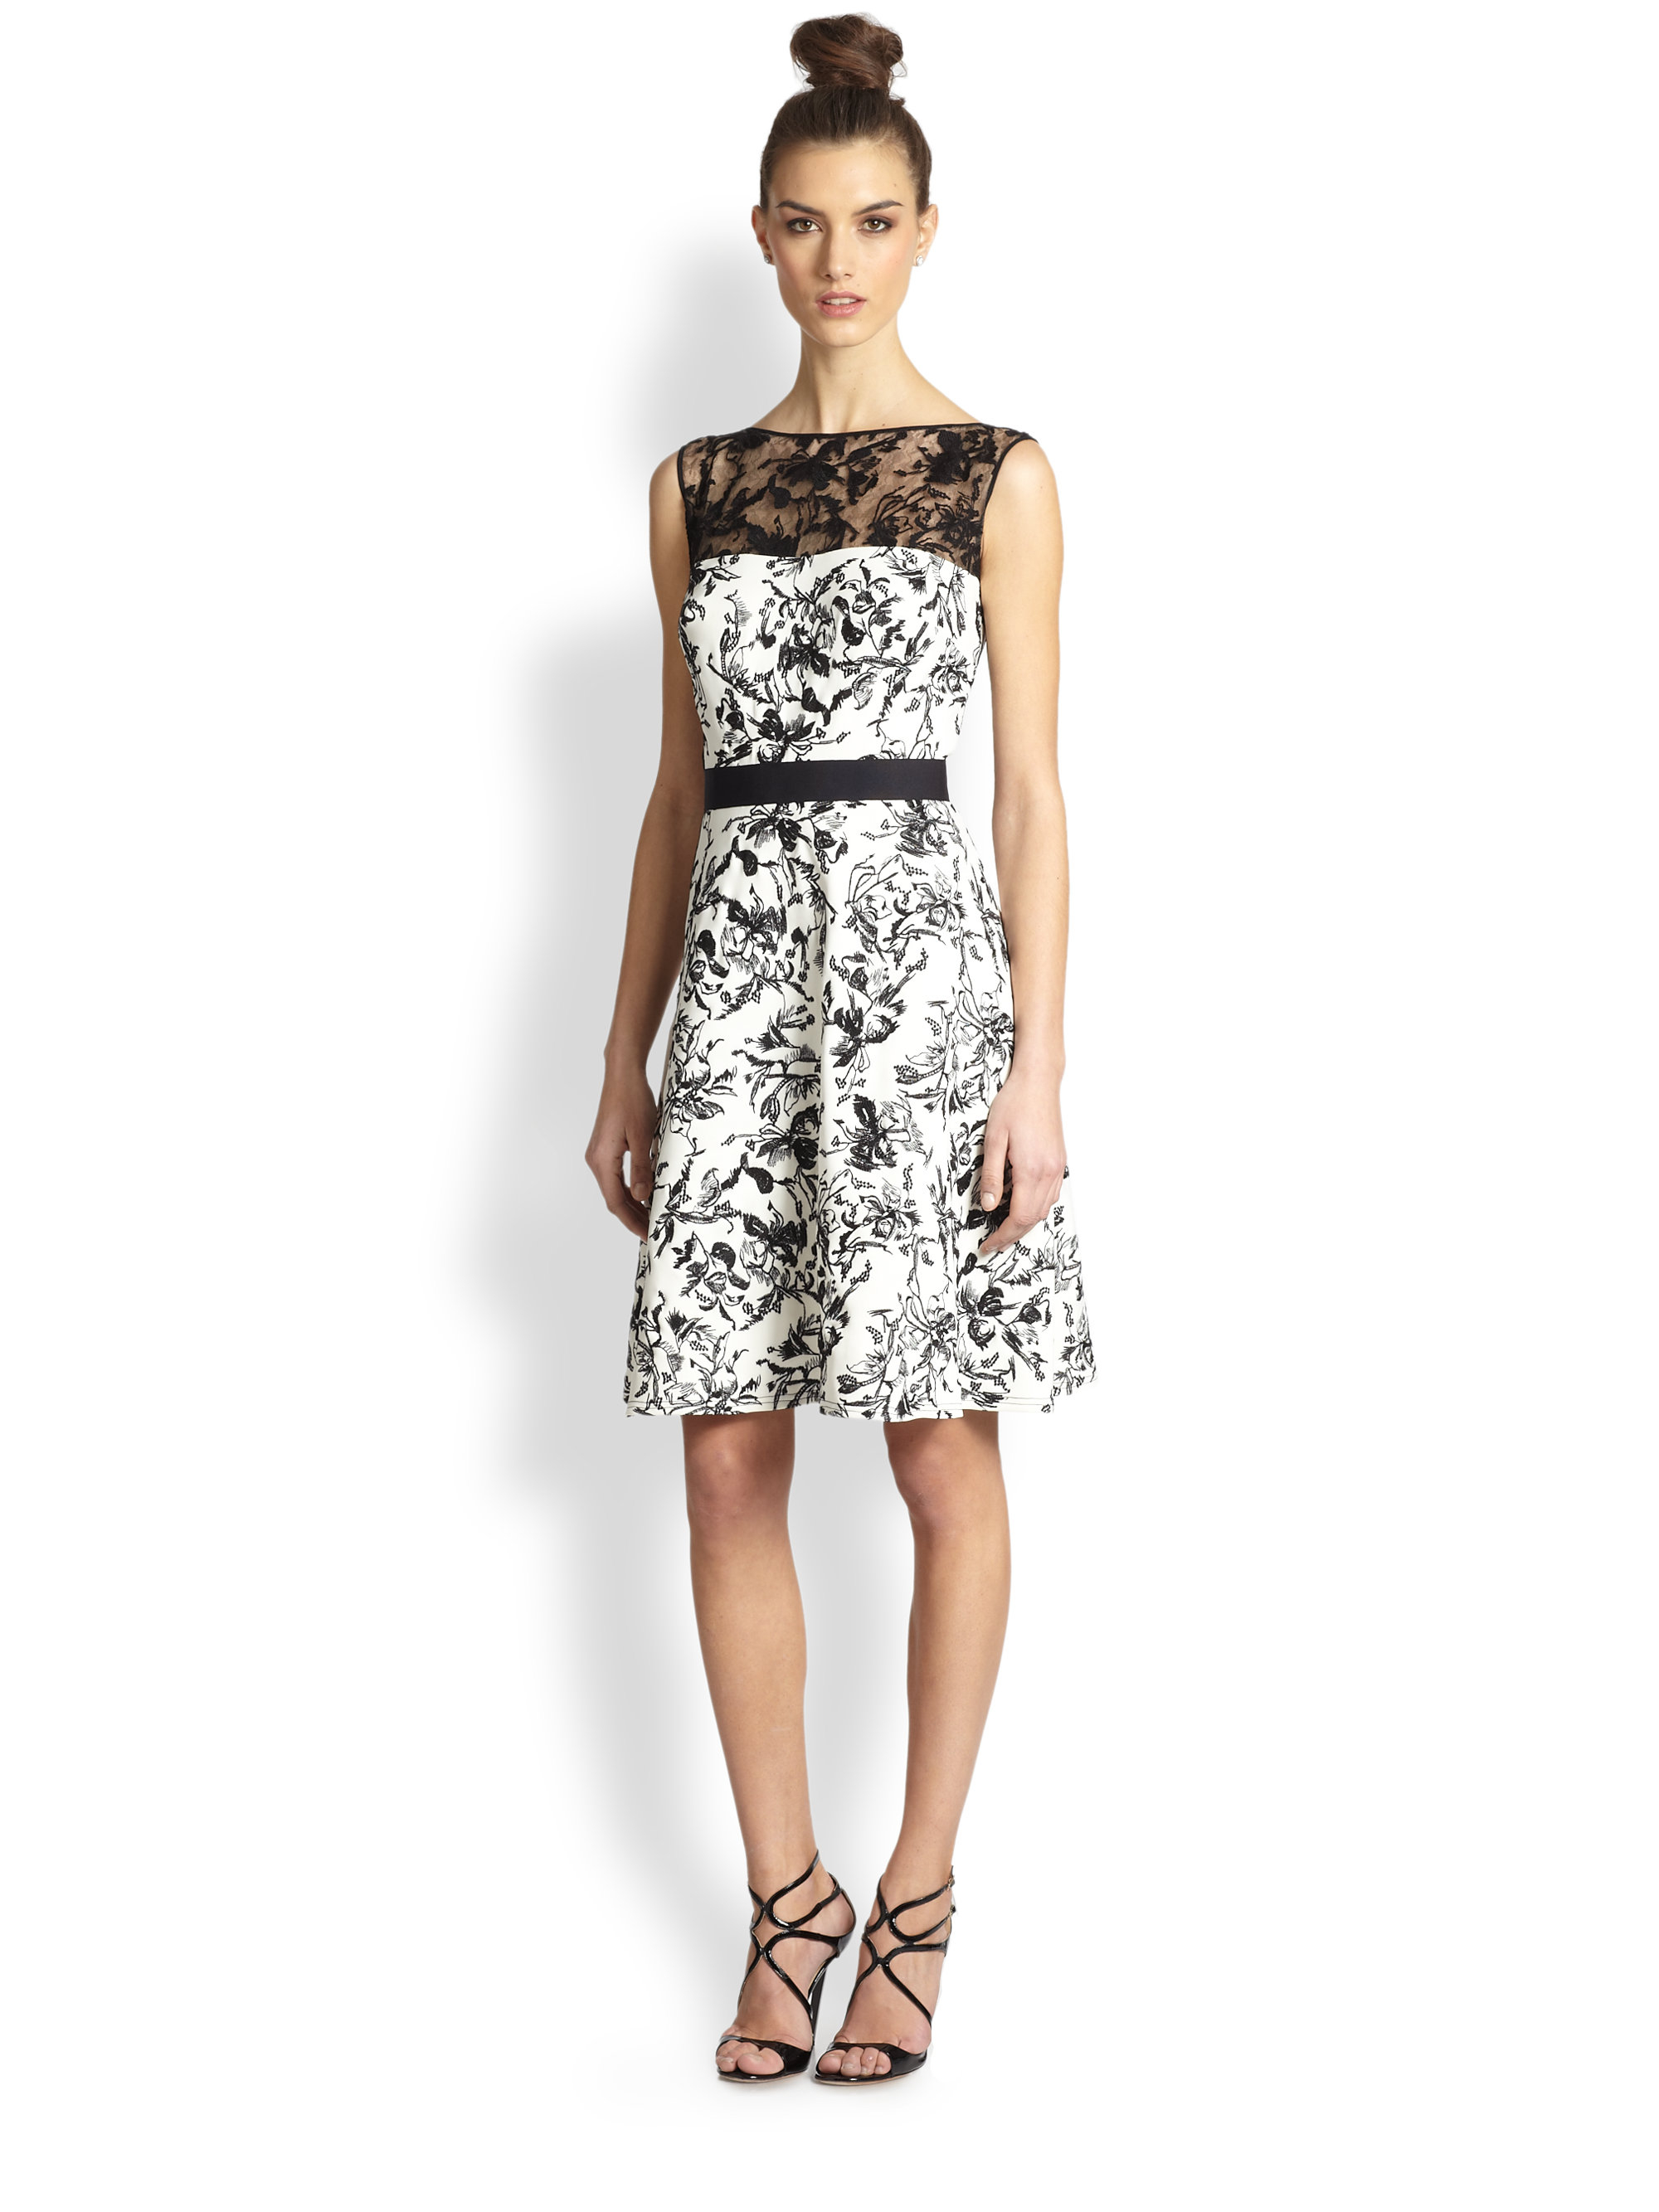 Lyst - Tadashi Shoji Lace-Trimmed Toile Cocktail Dress in Black